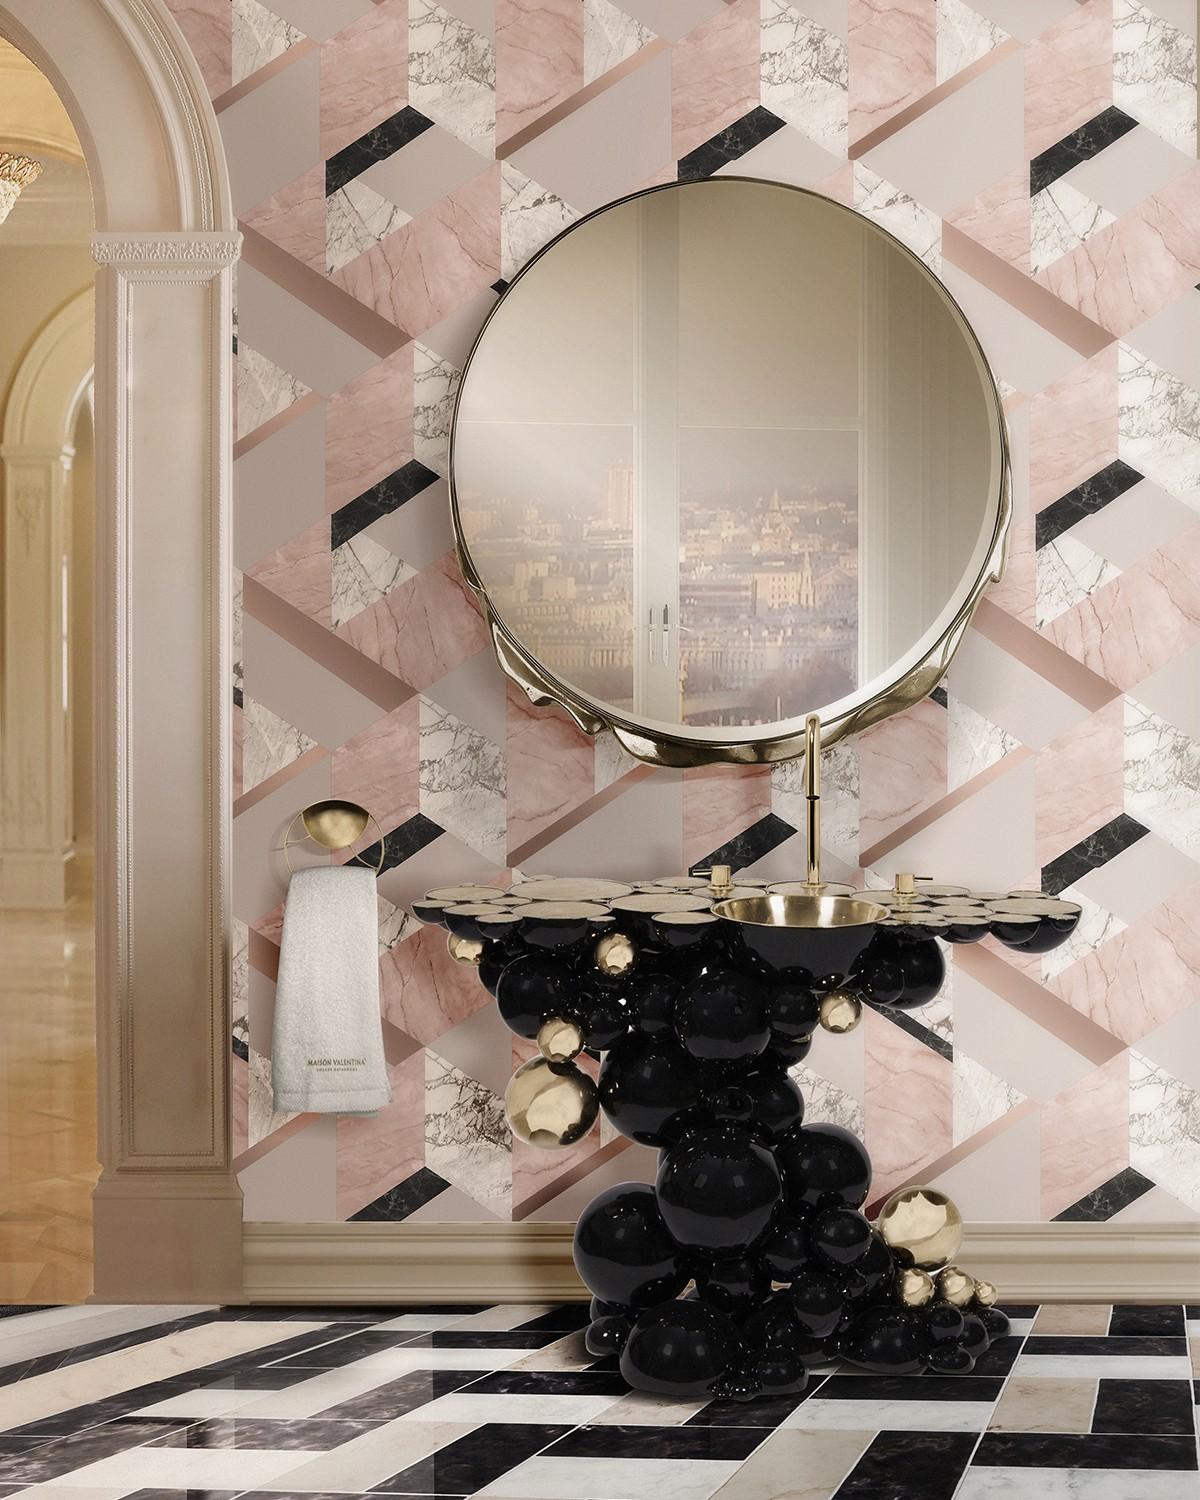 Pink Interiors: The Importance of Color In Interior Design pink interiors Pink Interiors: The Importance of Color In Interior Design soft pink bathroom set with newton washbasin